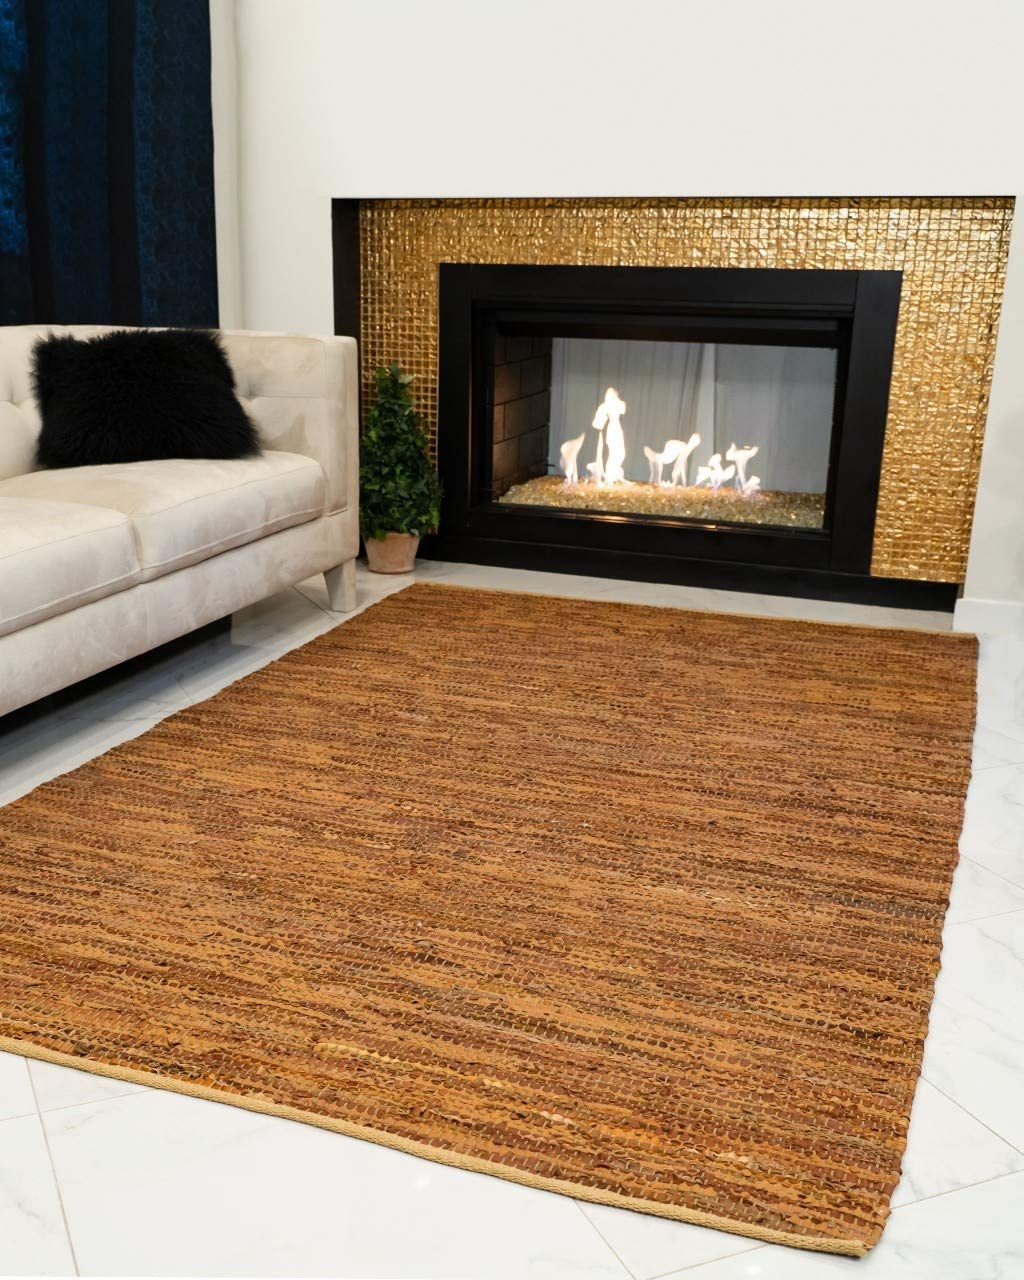 Natural Area Rugs Handmade Adore Collection 8 Feet by 10 Feet Brown Leather Rug, 8 x 10